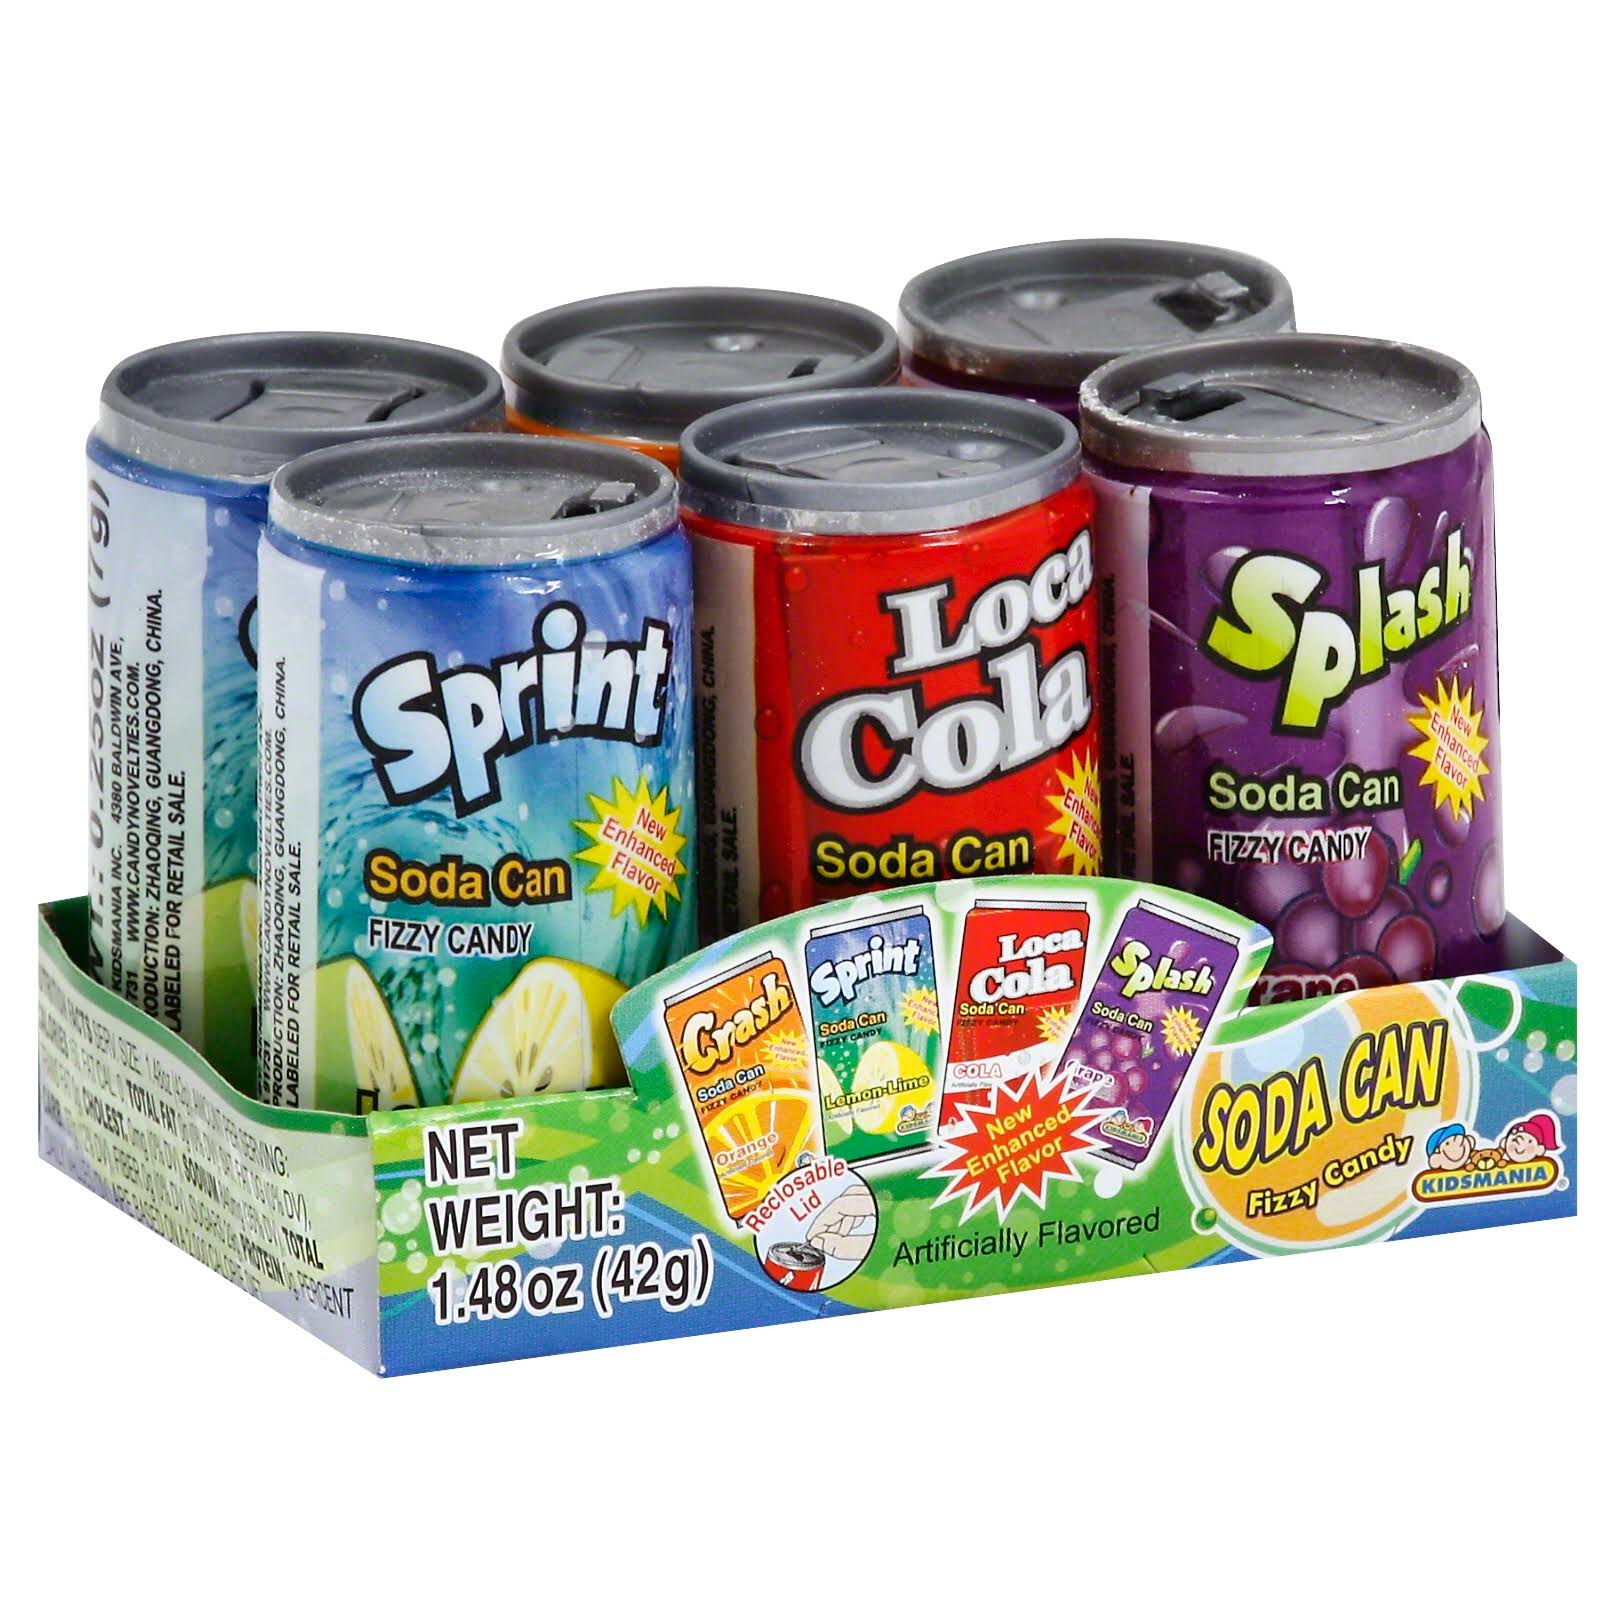 Soda Can Fizzy Candy Variety Pack - 6 pack